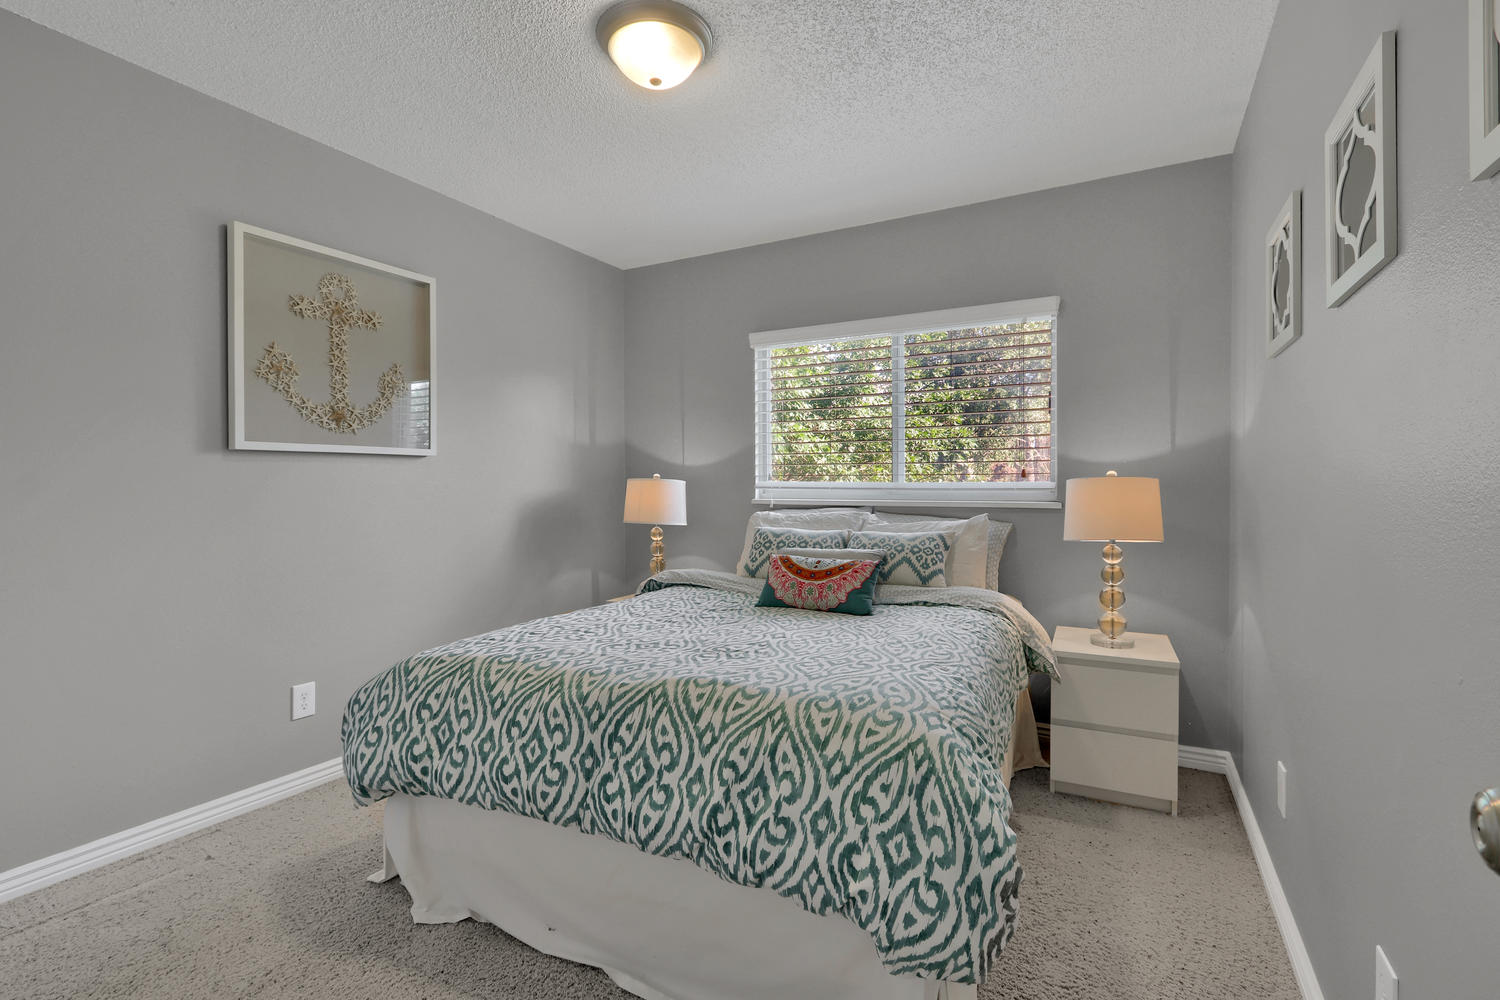 11246 W 104th Ave Westminster-large-021-021-Bedroom-1500x1000-72dpi.jpg